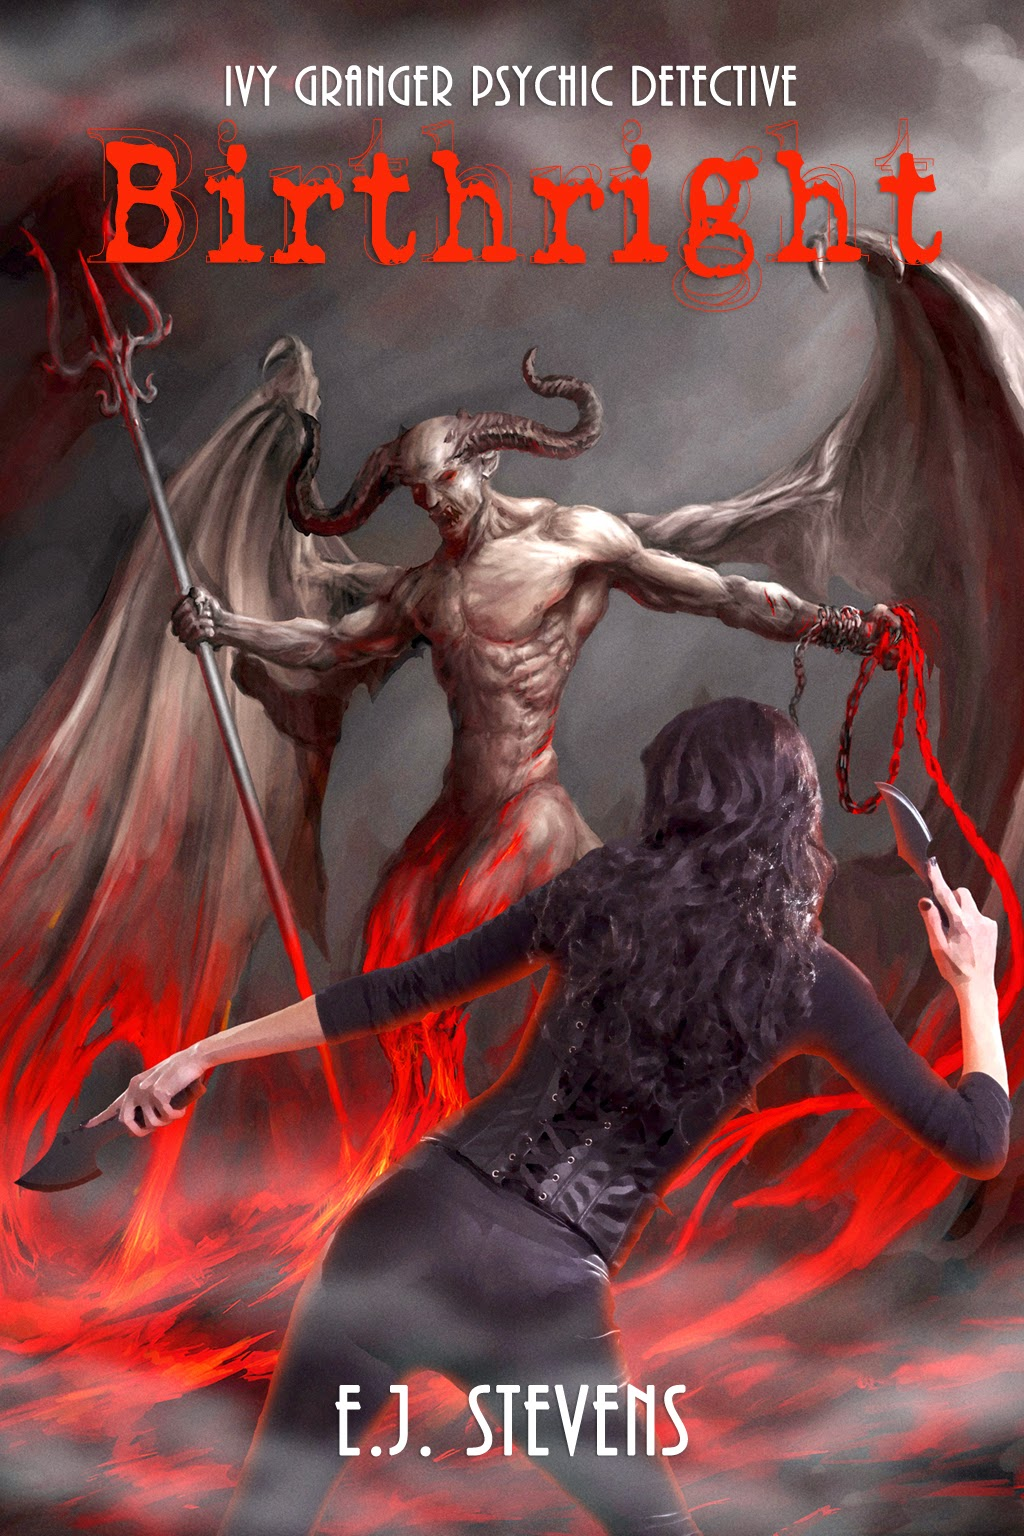 Birthright Ivy Granger urban fantasy novel by E.J. Stevens